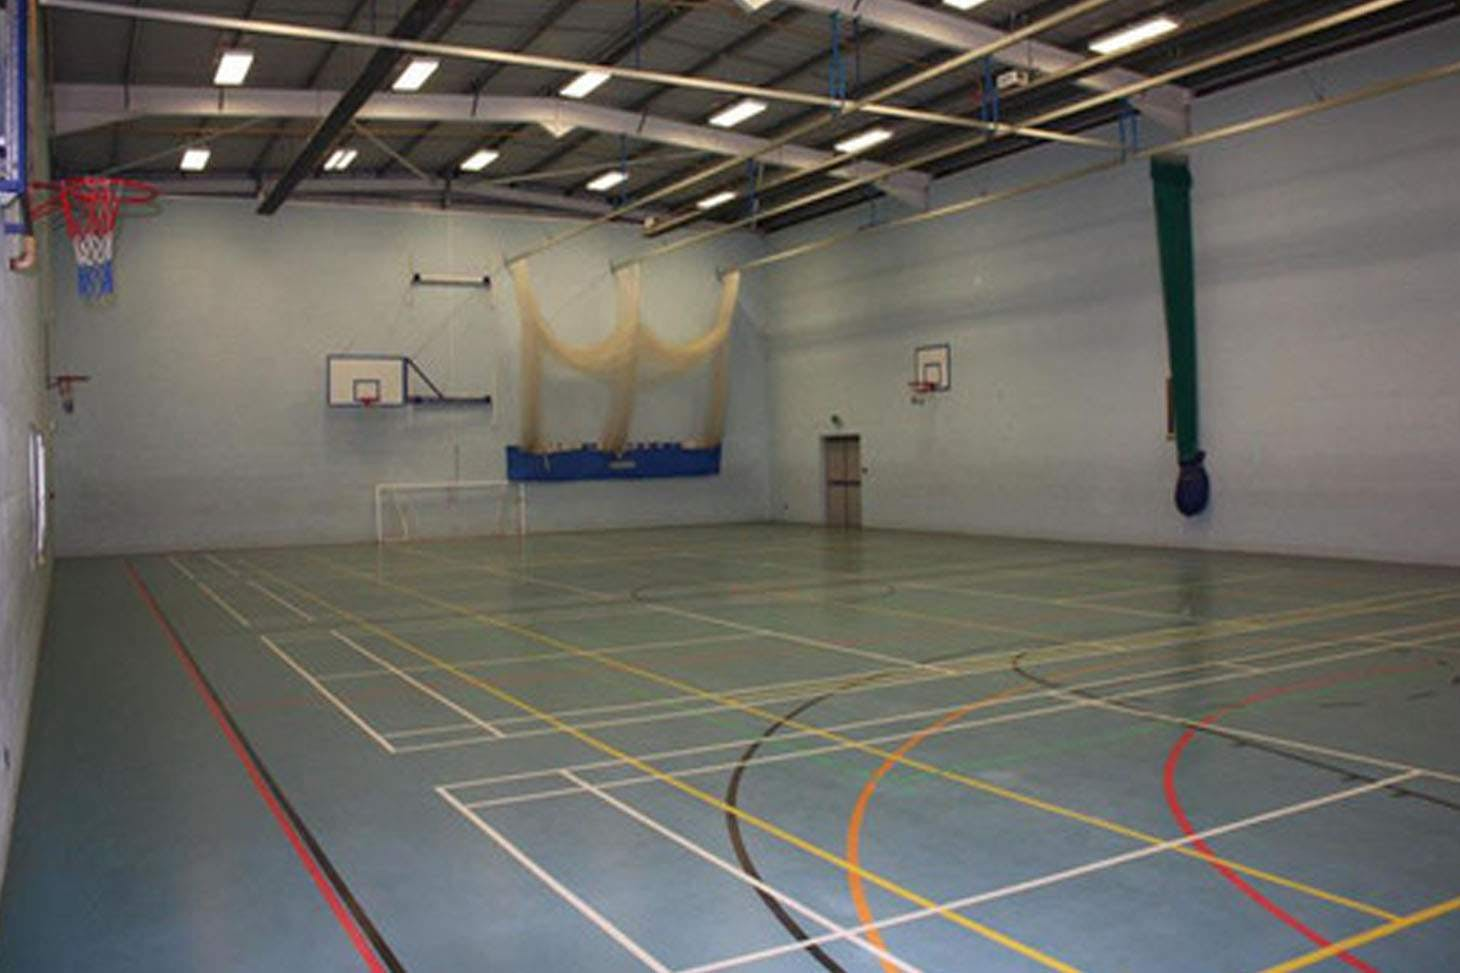 Bishop Rawstorne CE Academy Indoor badminton court